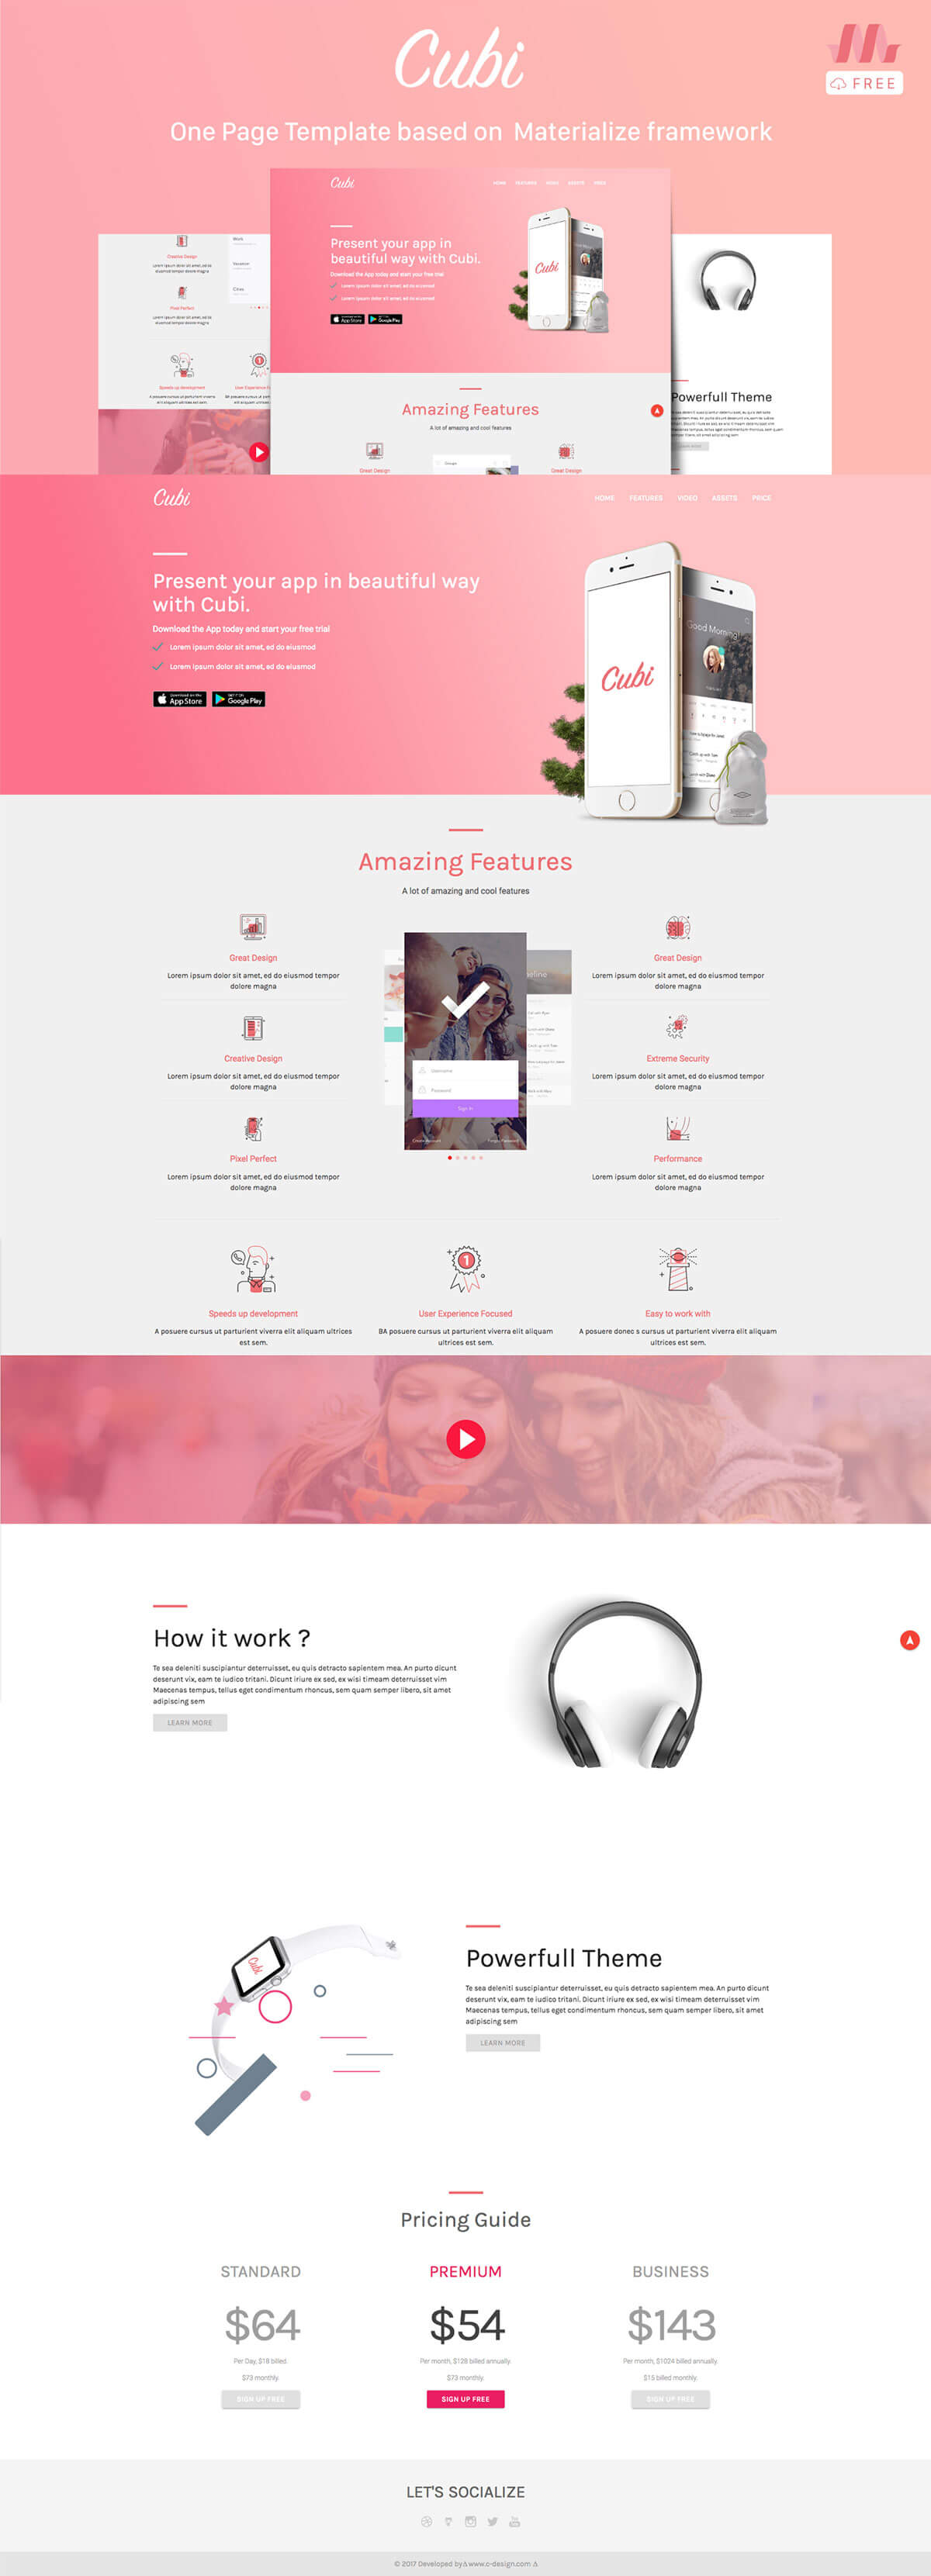 Free Cubi One Page Template